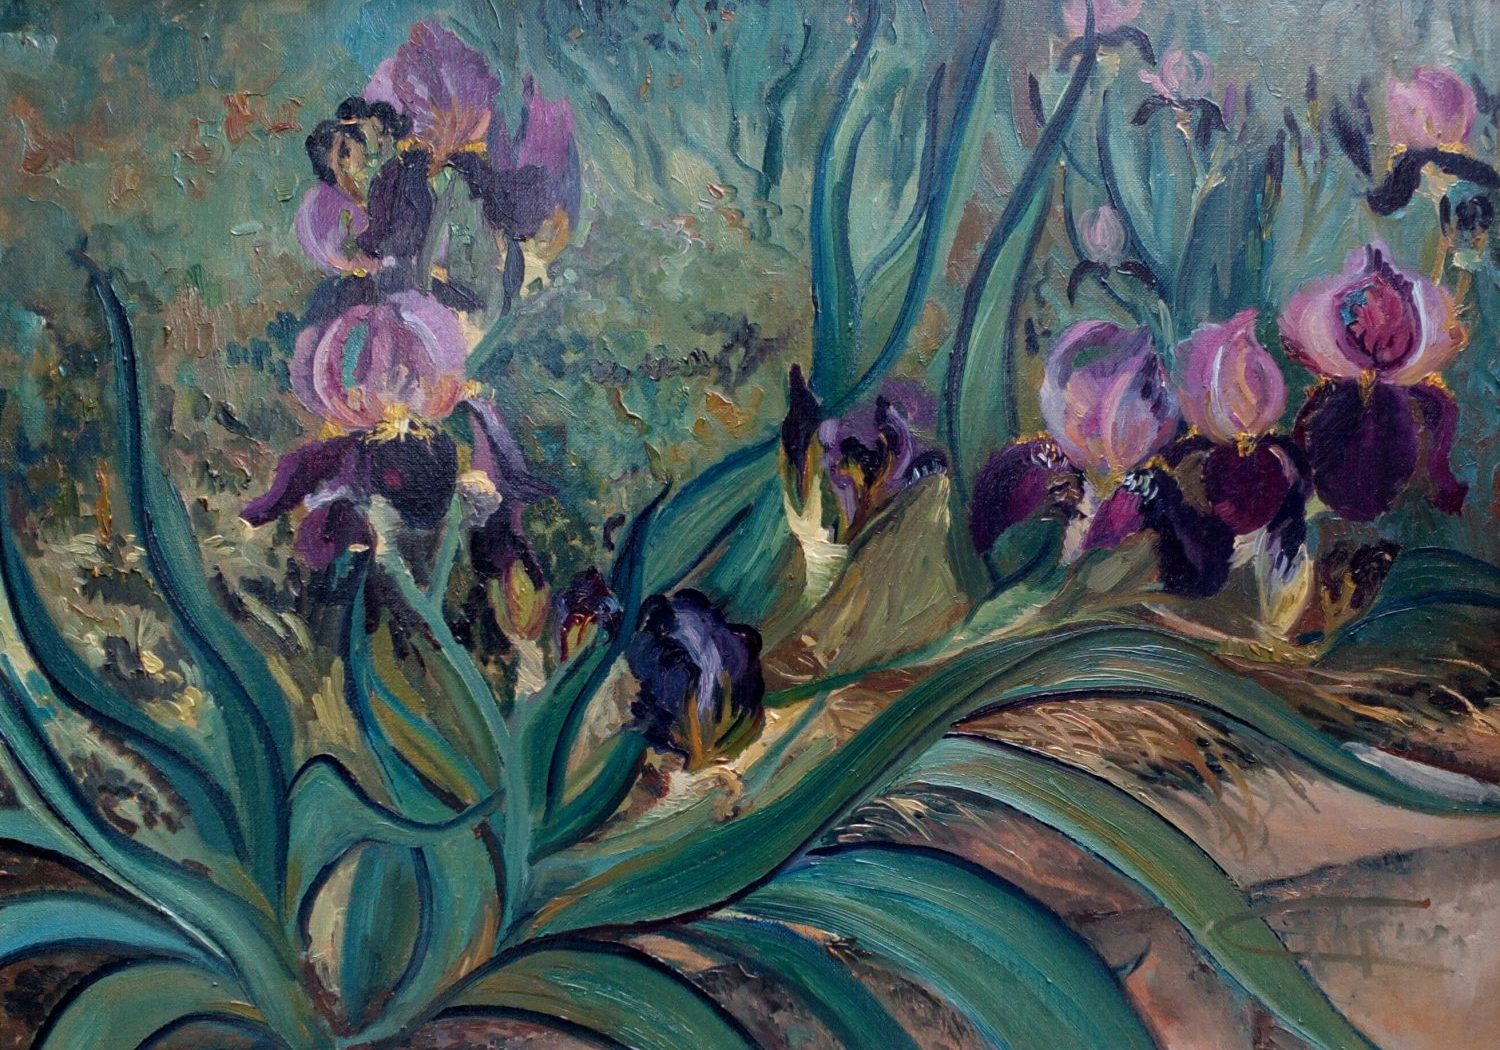 The original $5500 iris flower paintings is 22x30 plein air oil and the unframed giclée printed canvas with permanent pigment ink are made to order ready for your framer. The flower painting, is red and dark garnet color iris. https://gallery.deborahchapin.com